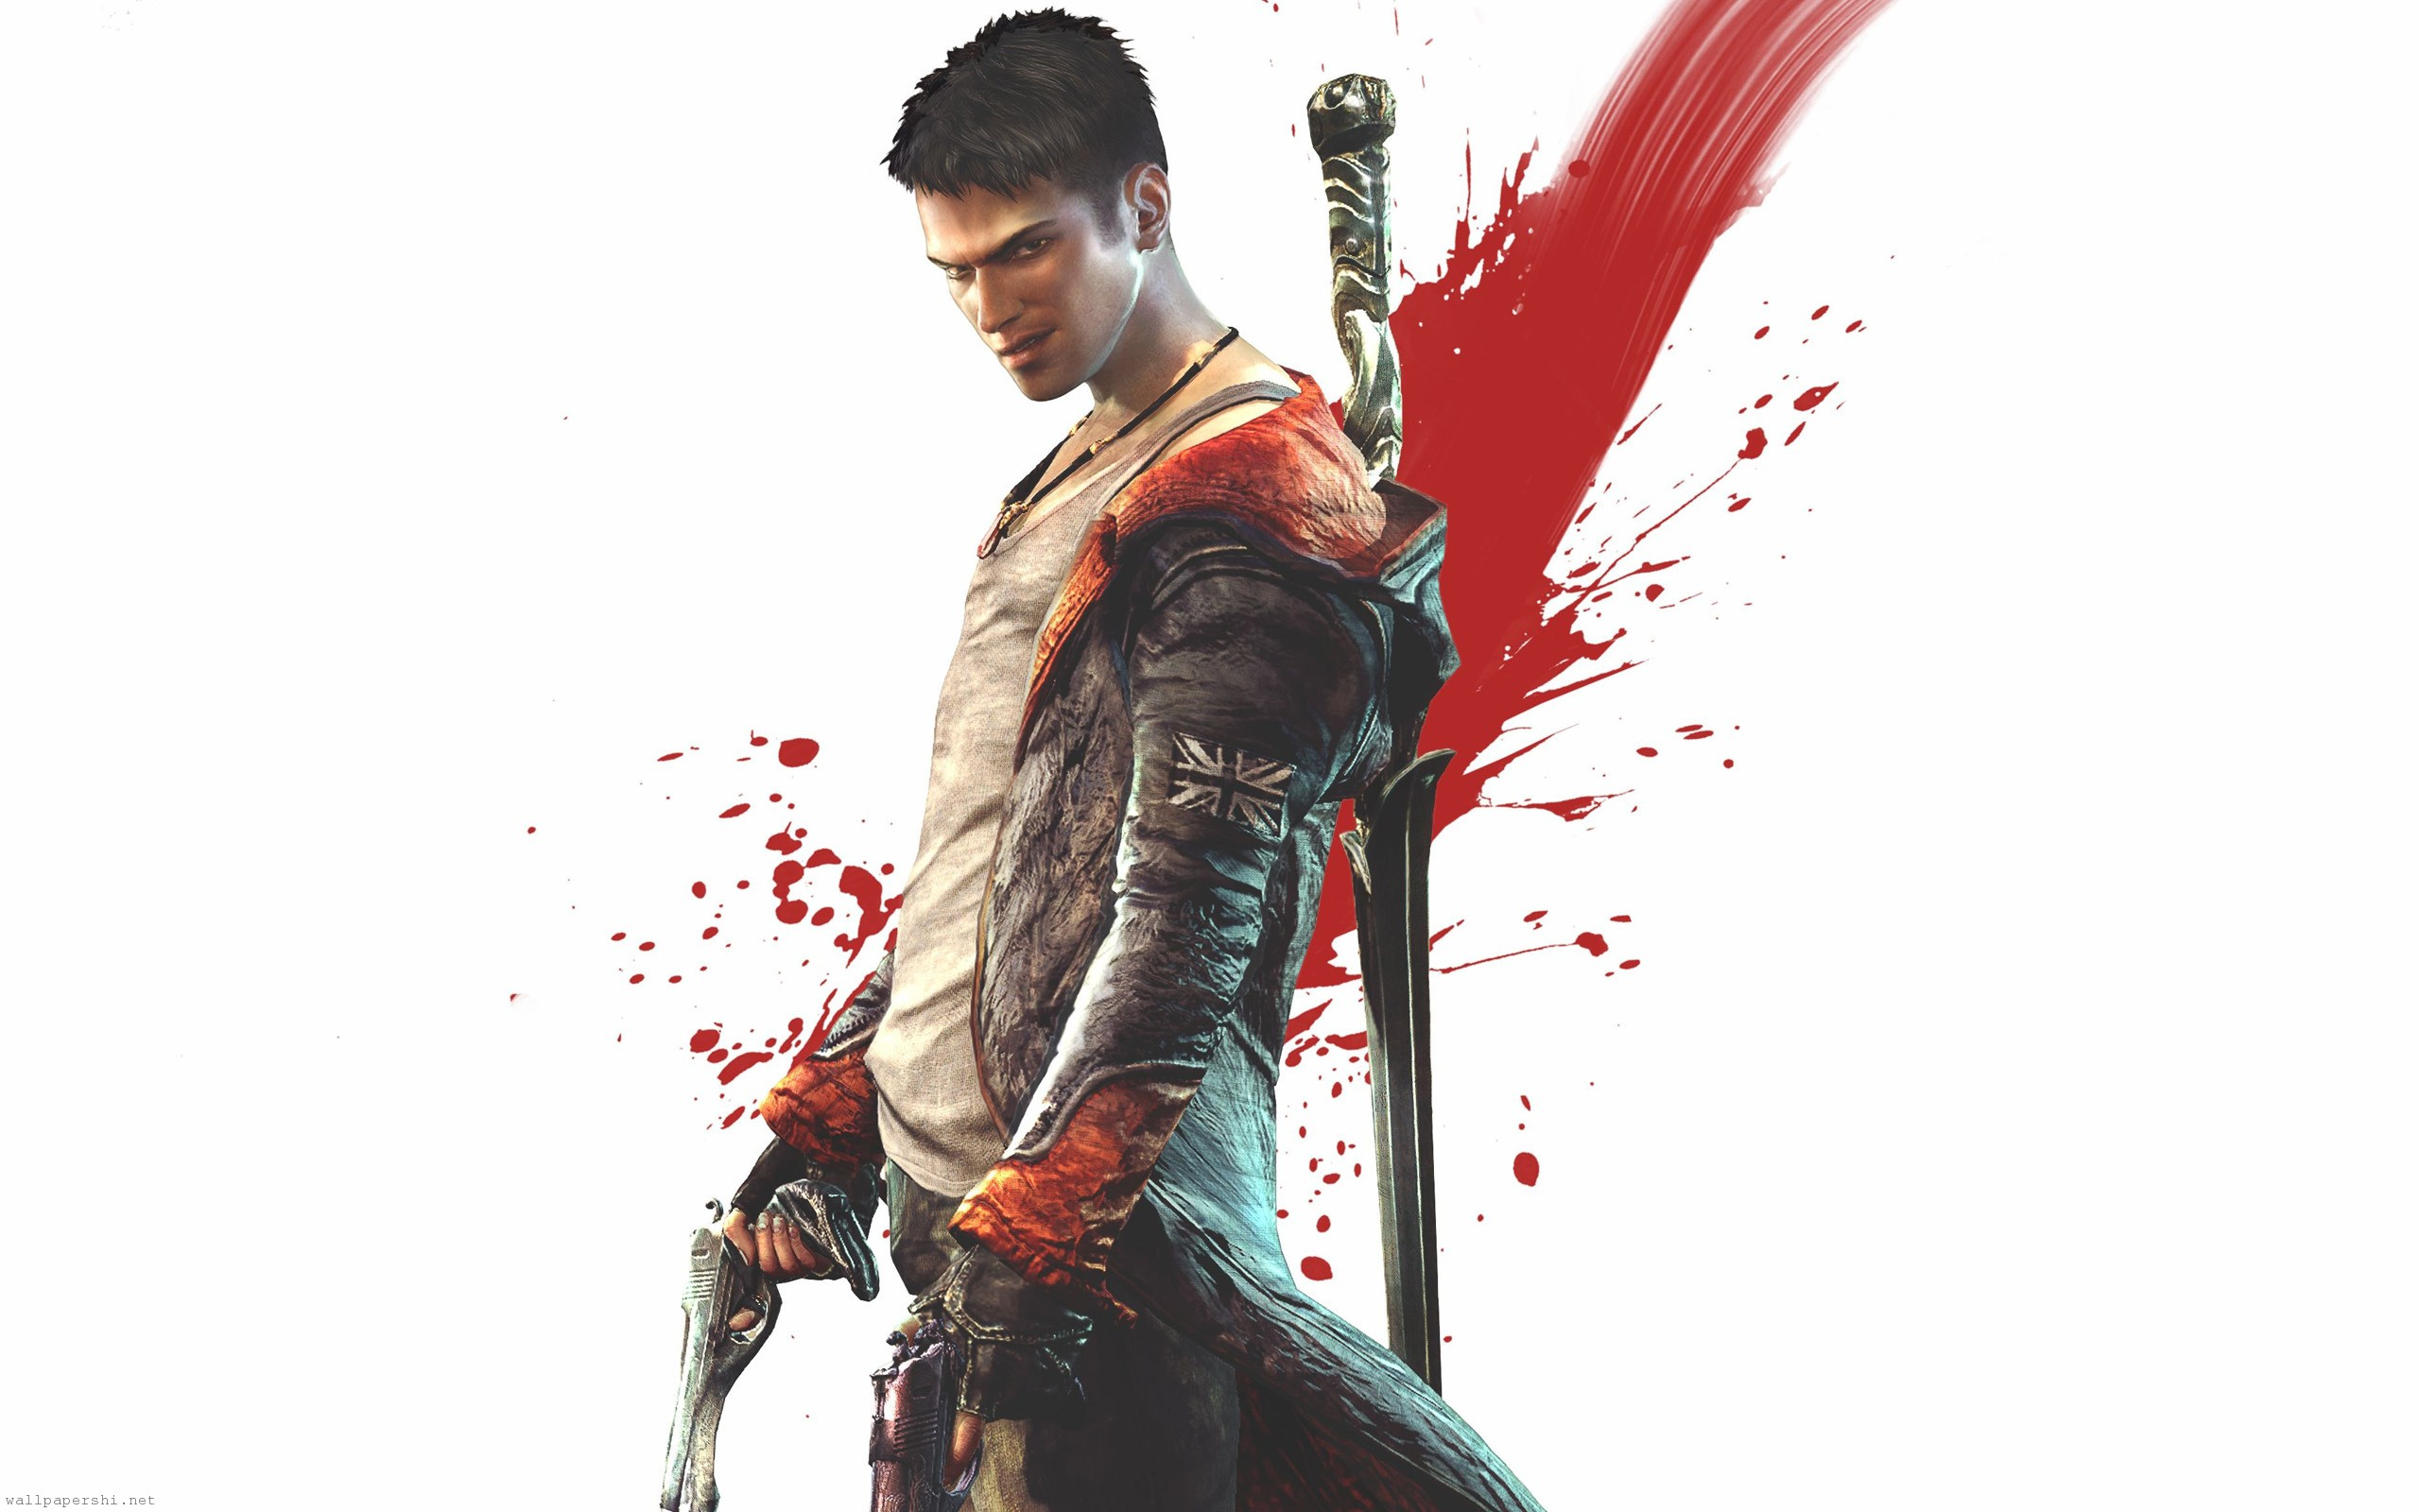 DMC: Devil May Cry CG Trailer Revealed – The Koalition